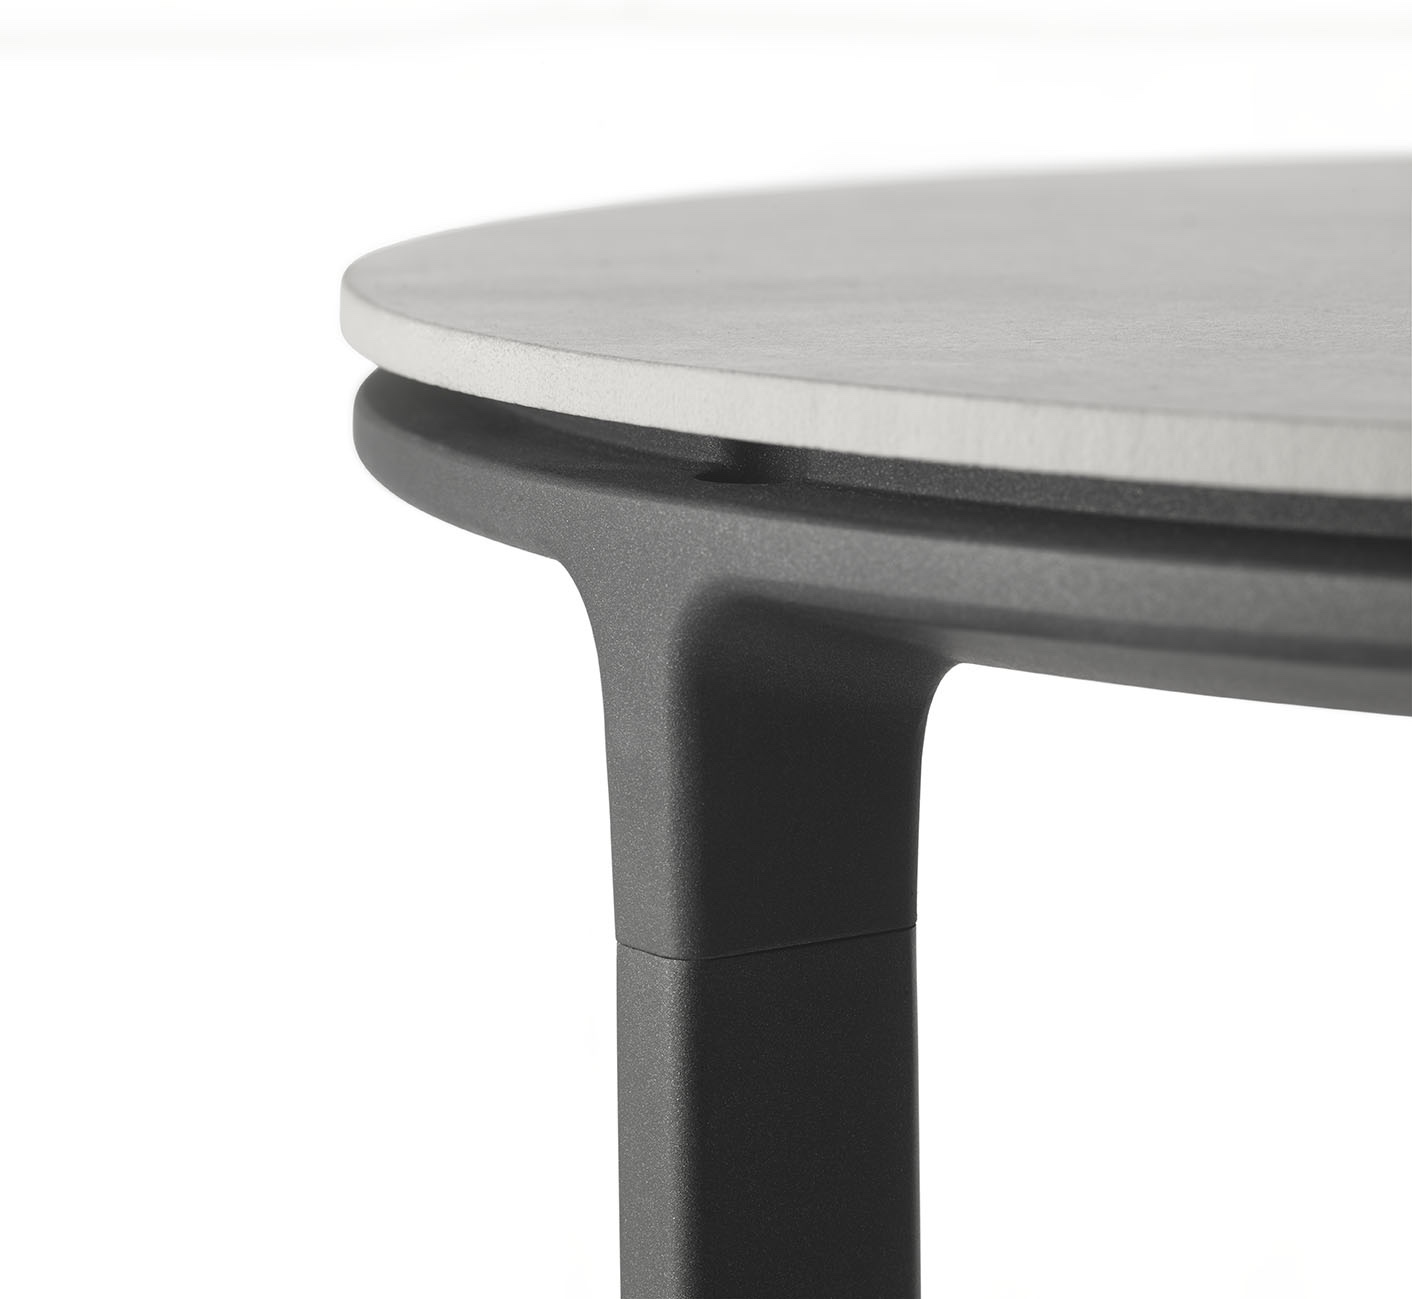 Vipp421 side table close-up